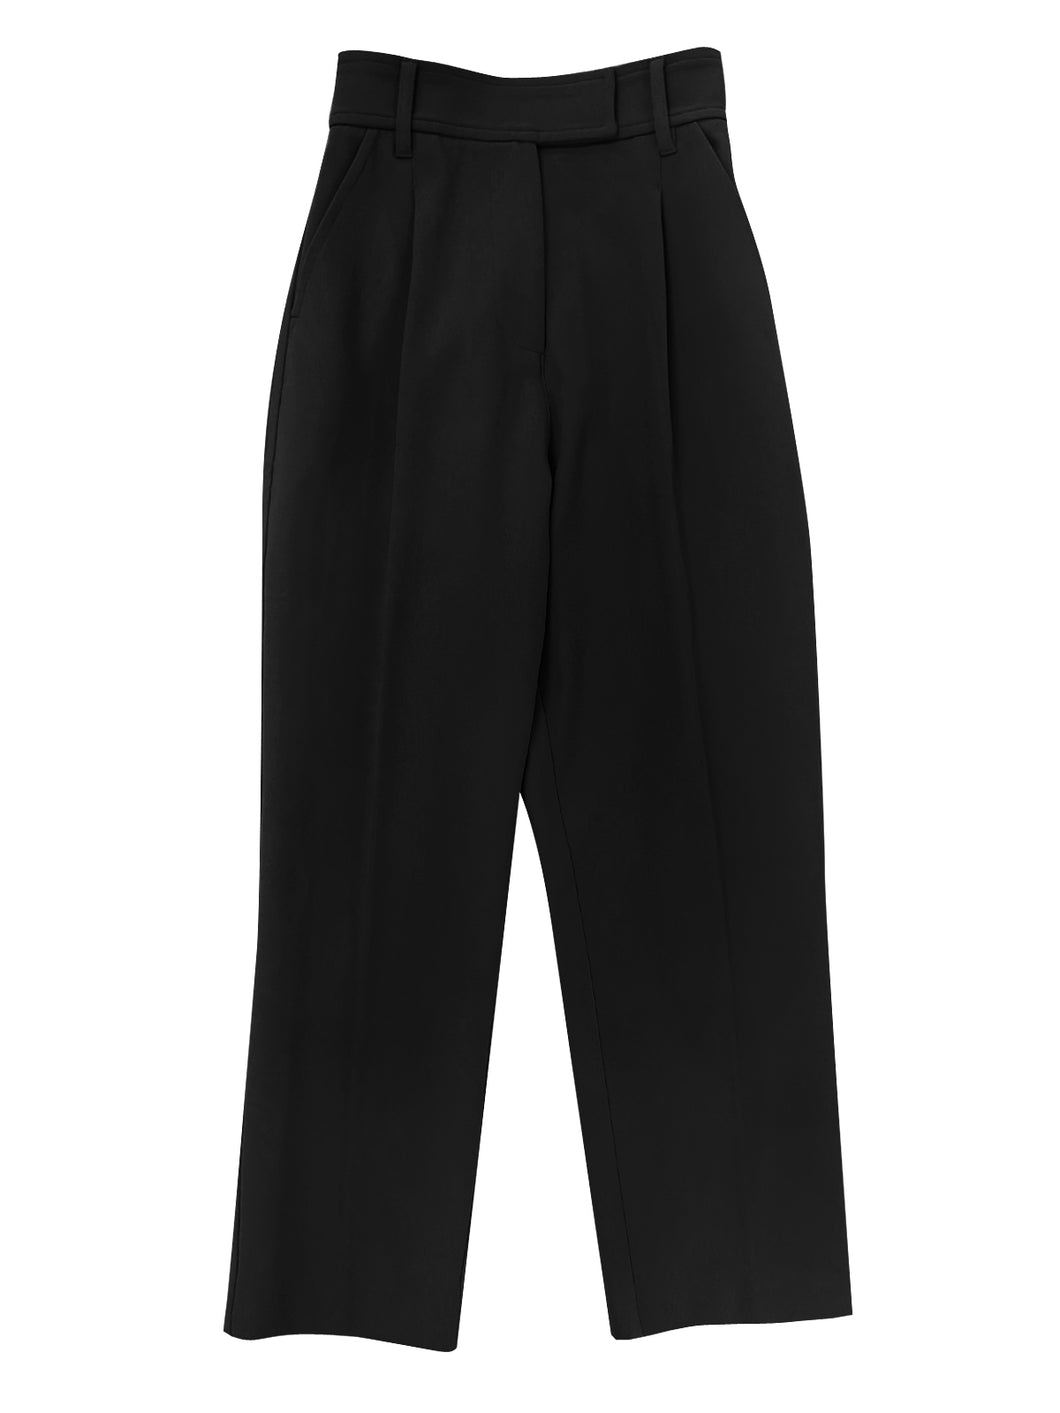 TUCK EFFECT PANTS